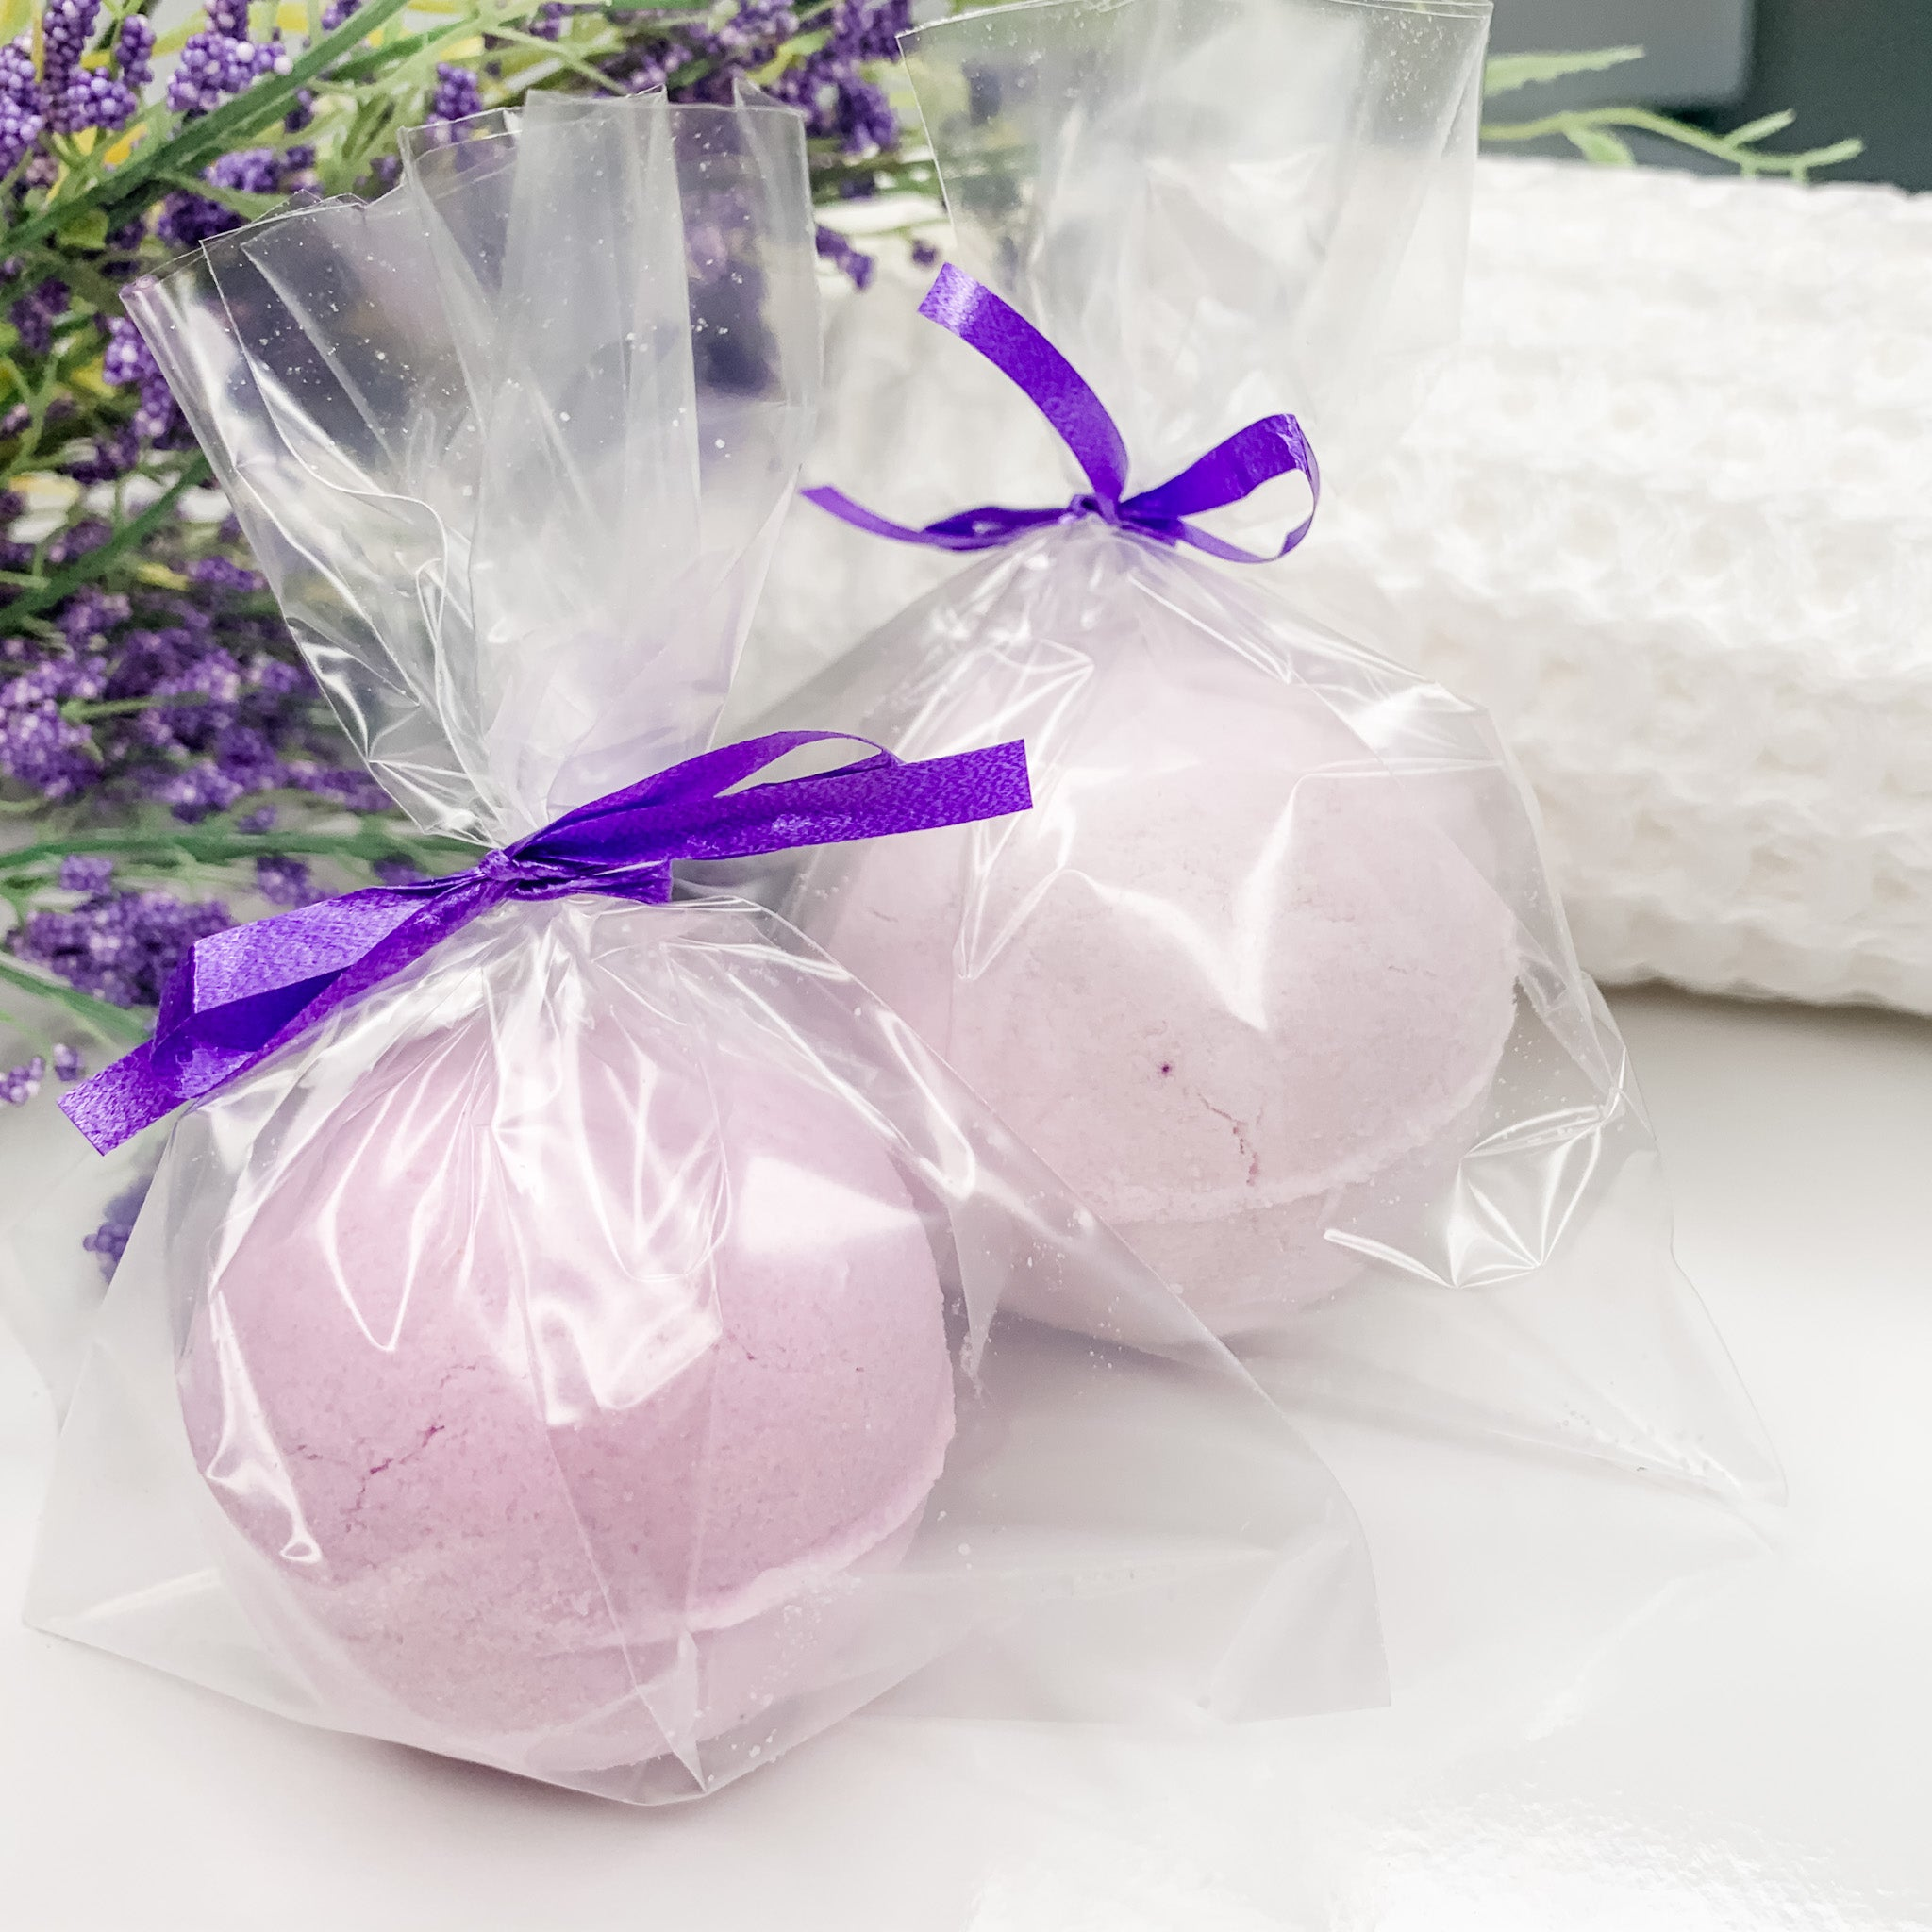 Simply Organic Soap Bath Bombs